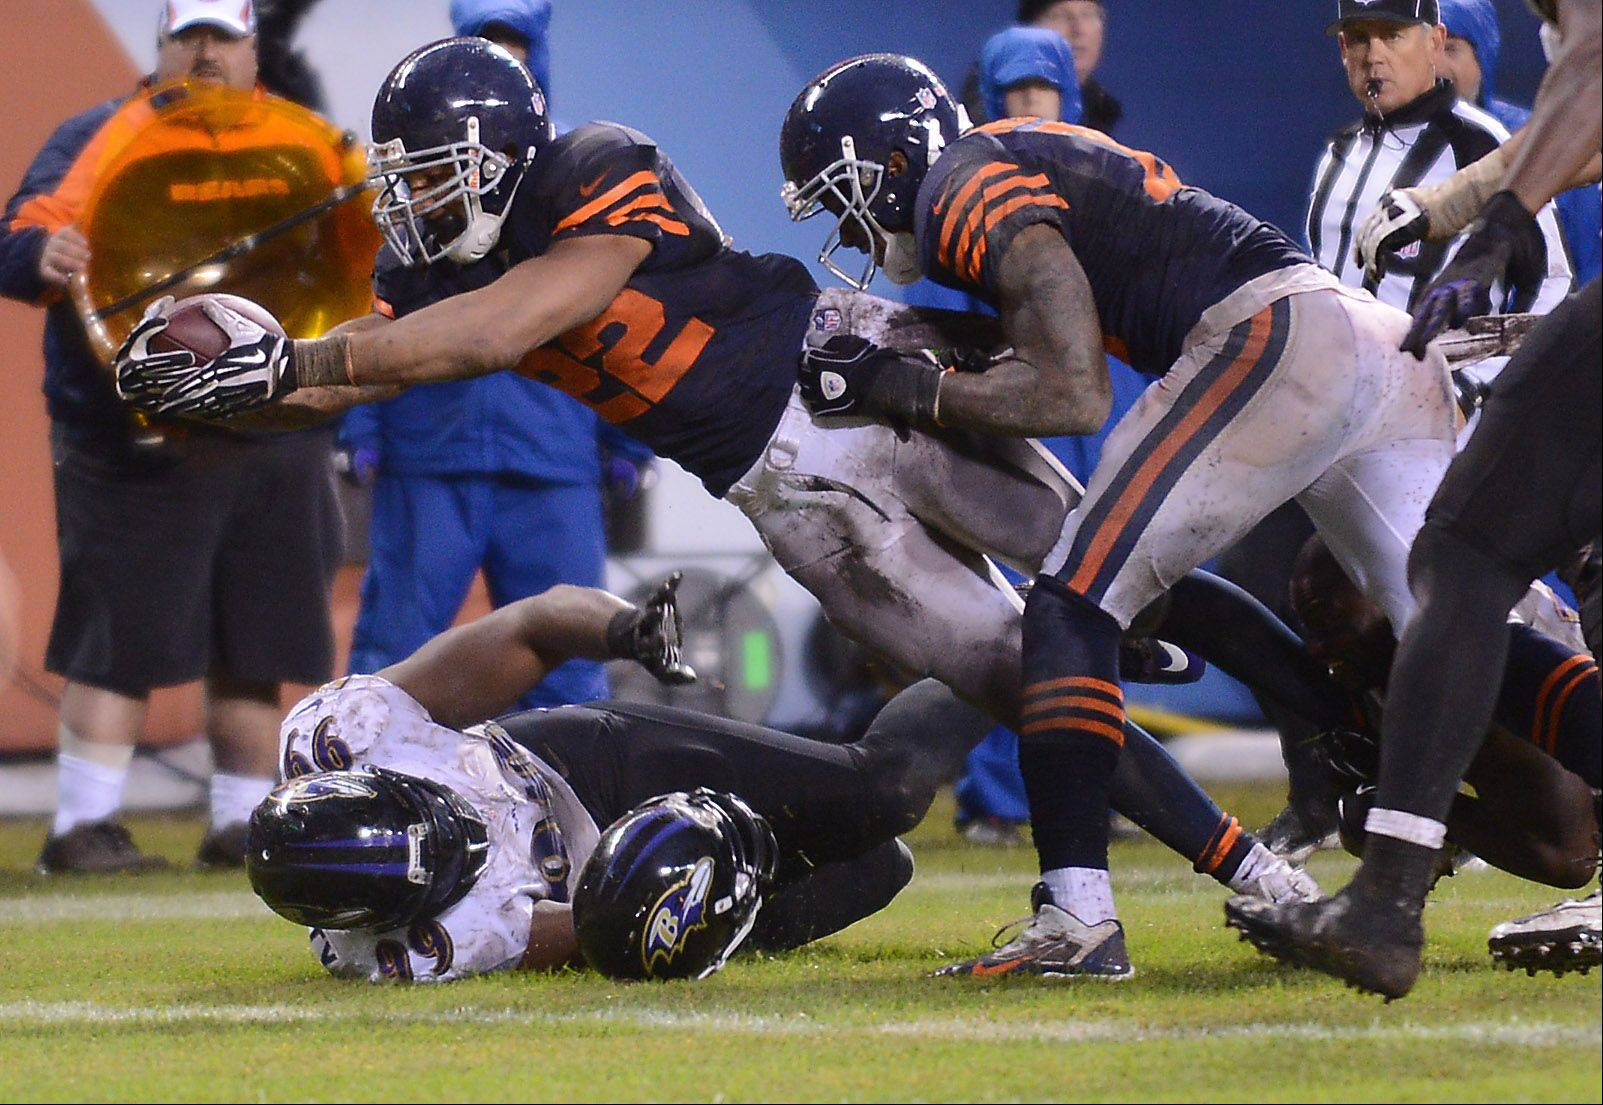 Chicago Bears running back Matt Forte (22) dives for the end zone and a fourth-quarter touchdown against the Ravens during Sunday's game in Chicago.